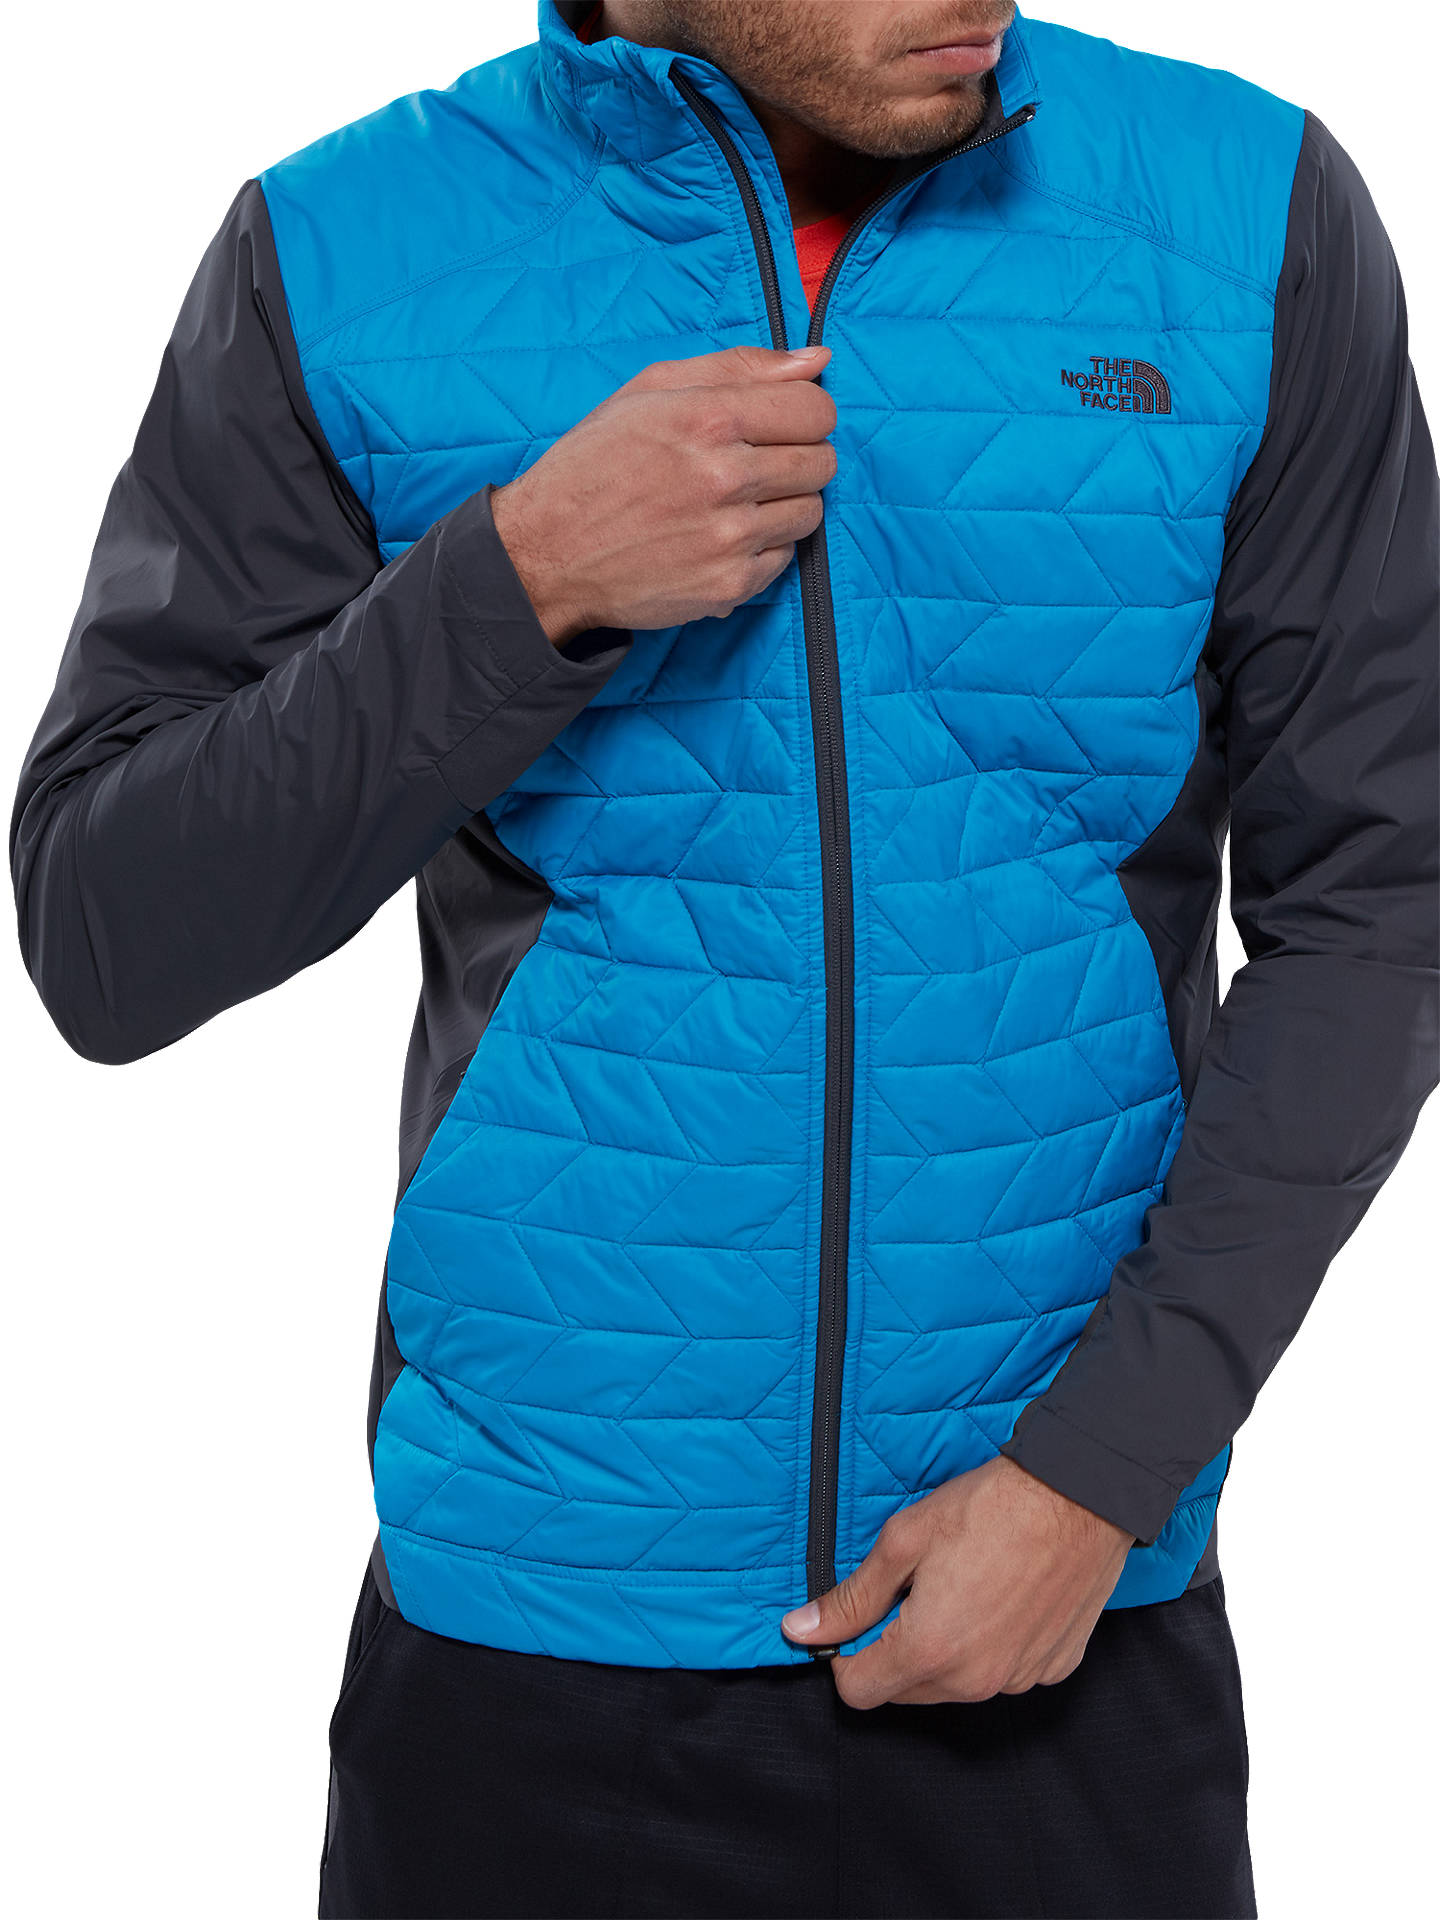 21ee437e8 The North Face Thermoball Active Men's Jacket, Blue at John Lewis ...